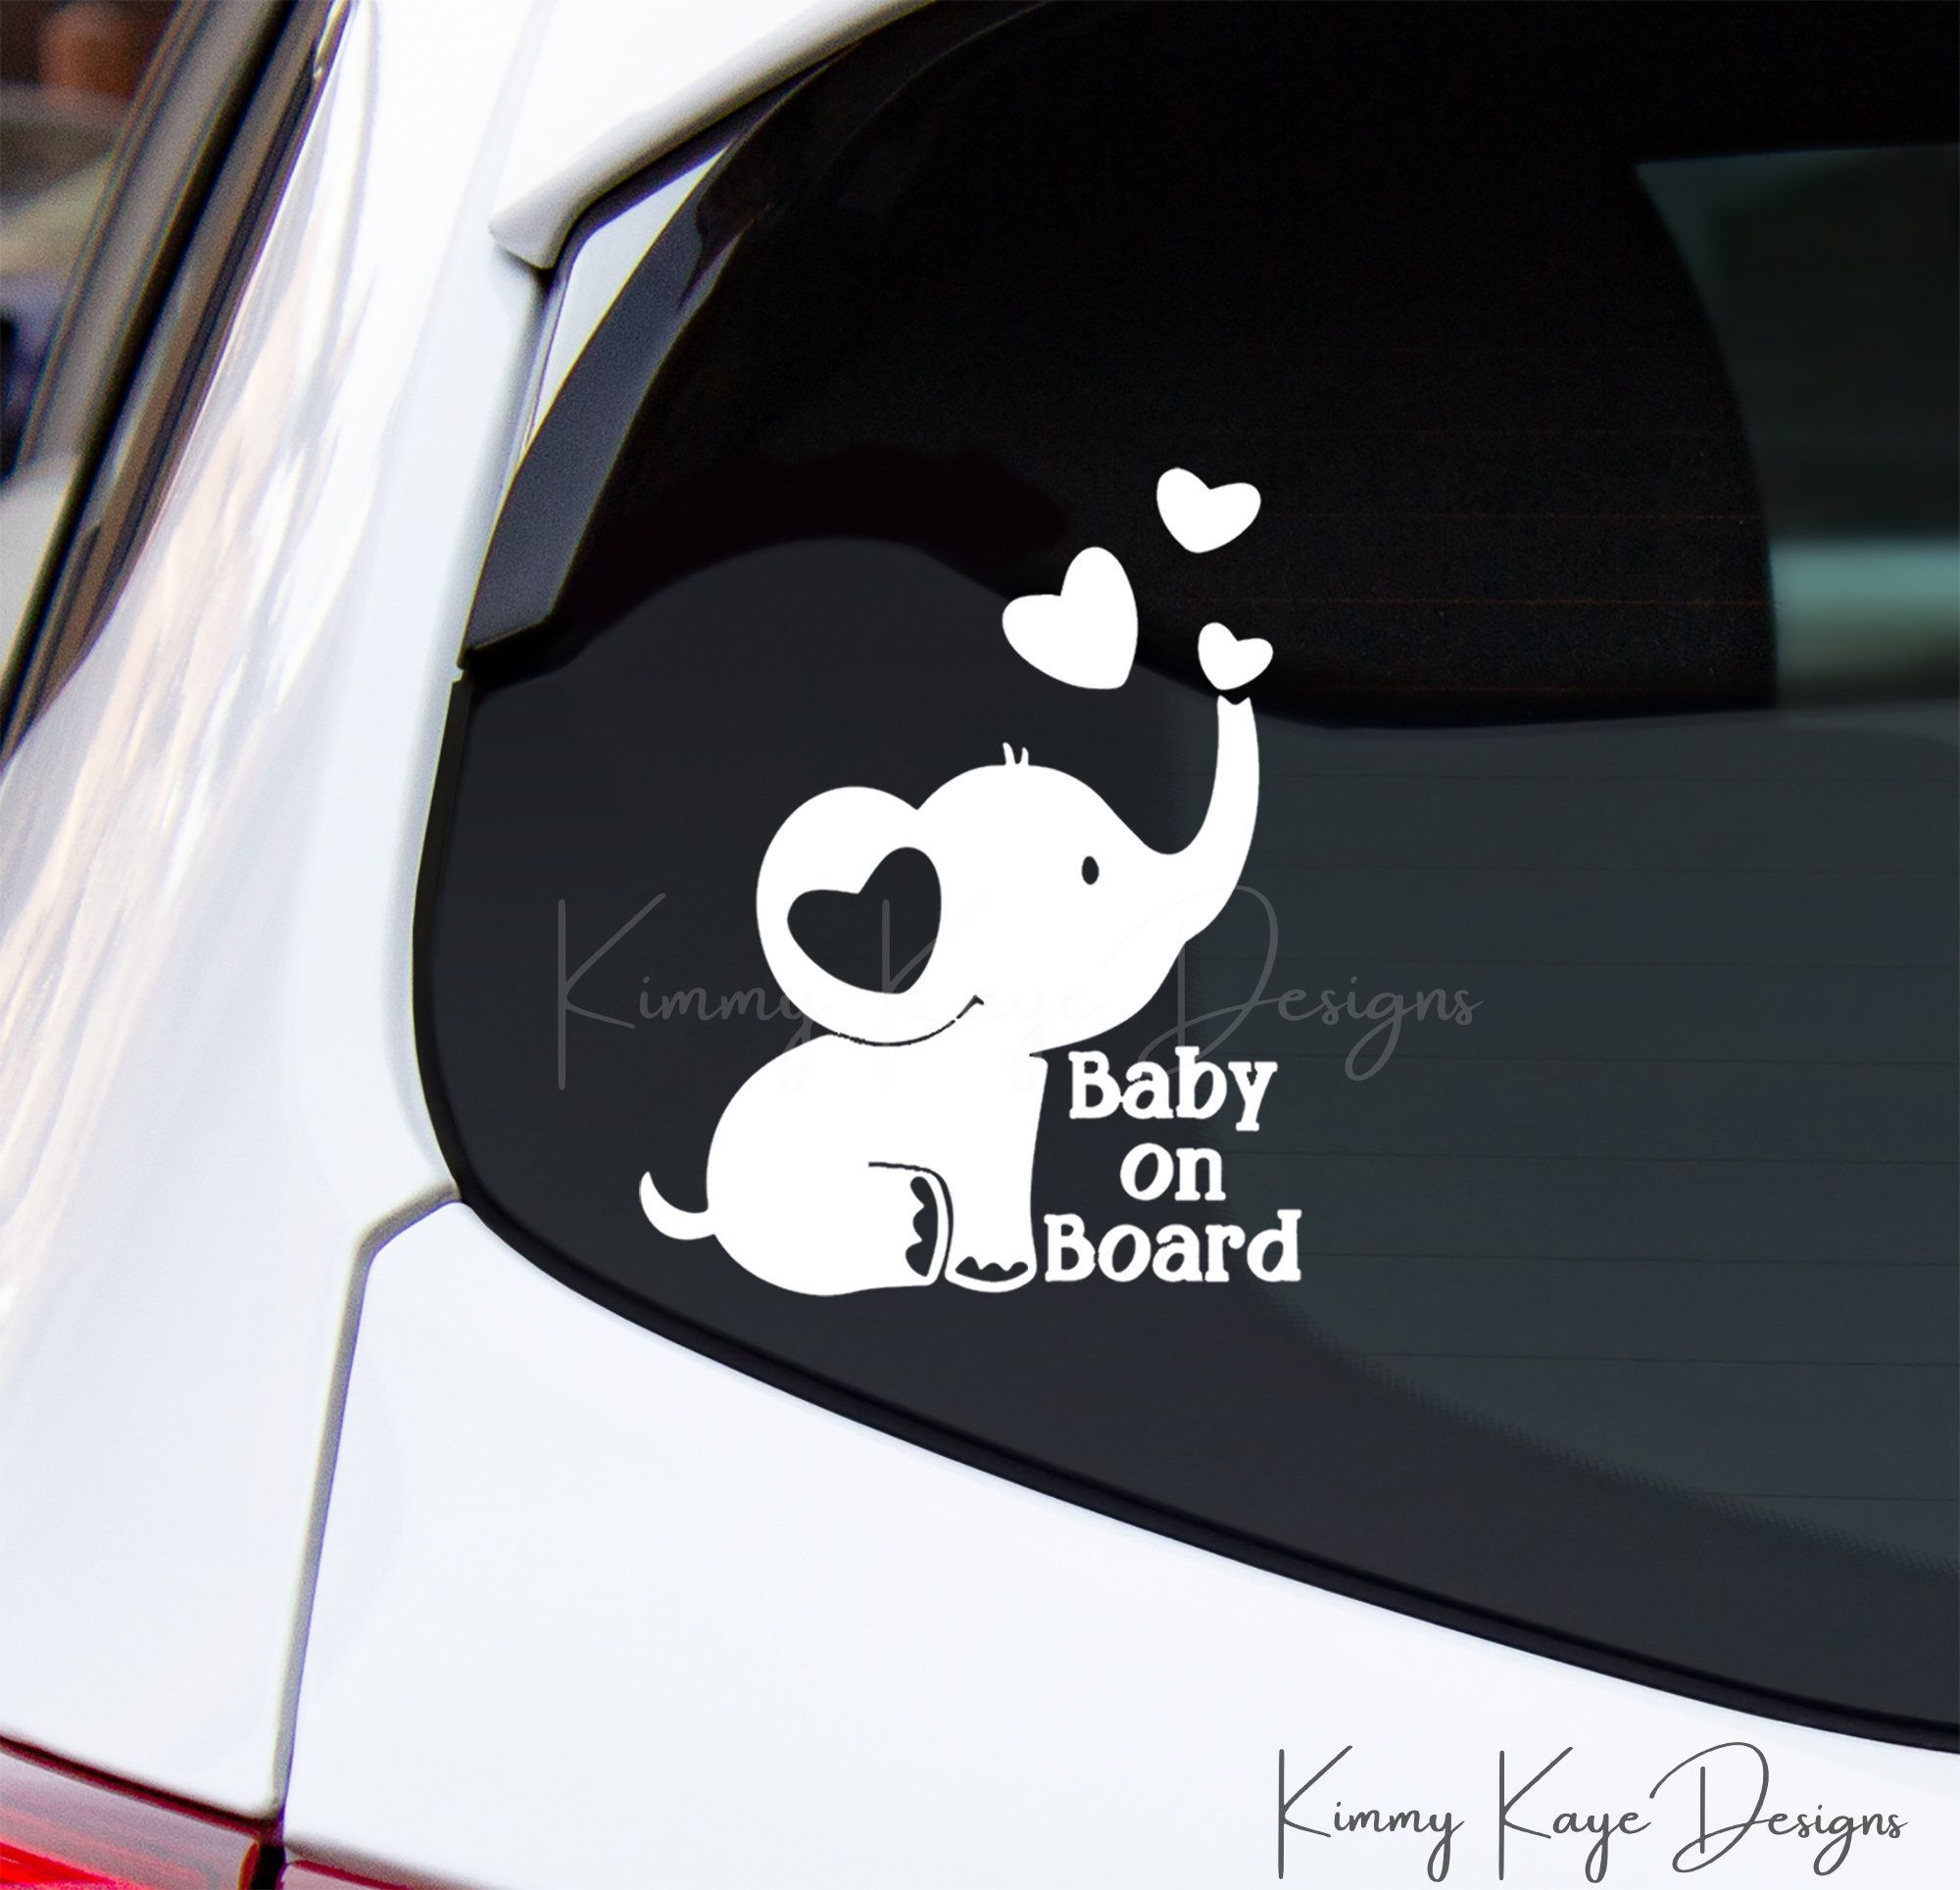 Baby On Board Decal Baby Elephant Car Decal Informs Rescue Workers In An Emergency Baby Elephant Elephant Car Car Decals [ 1929 x 2000 Pixel ]